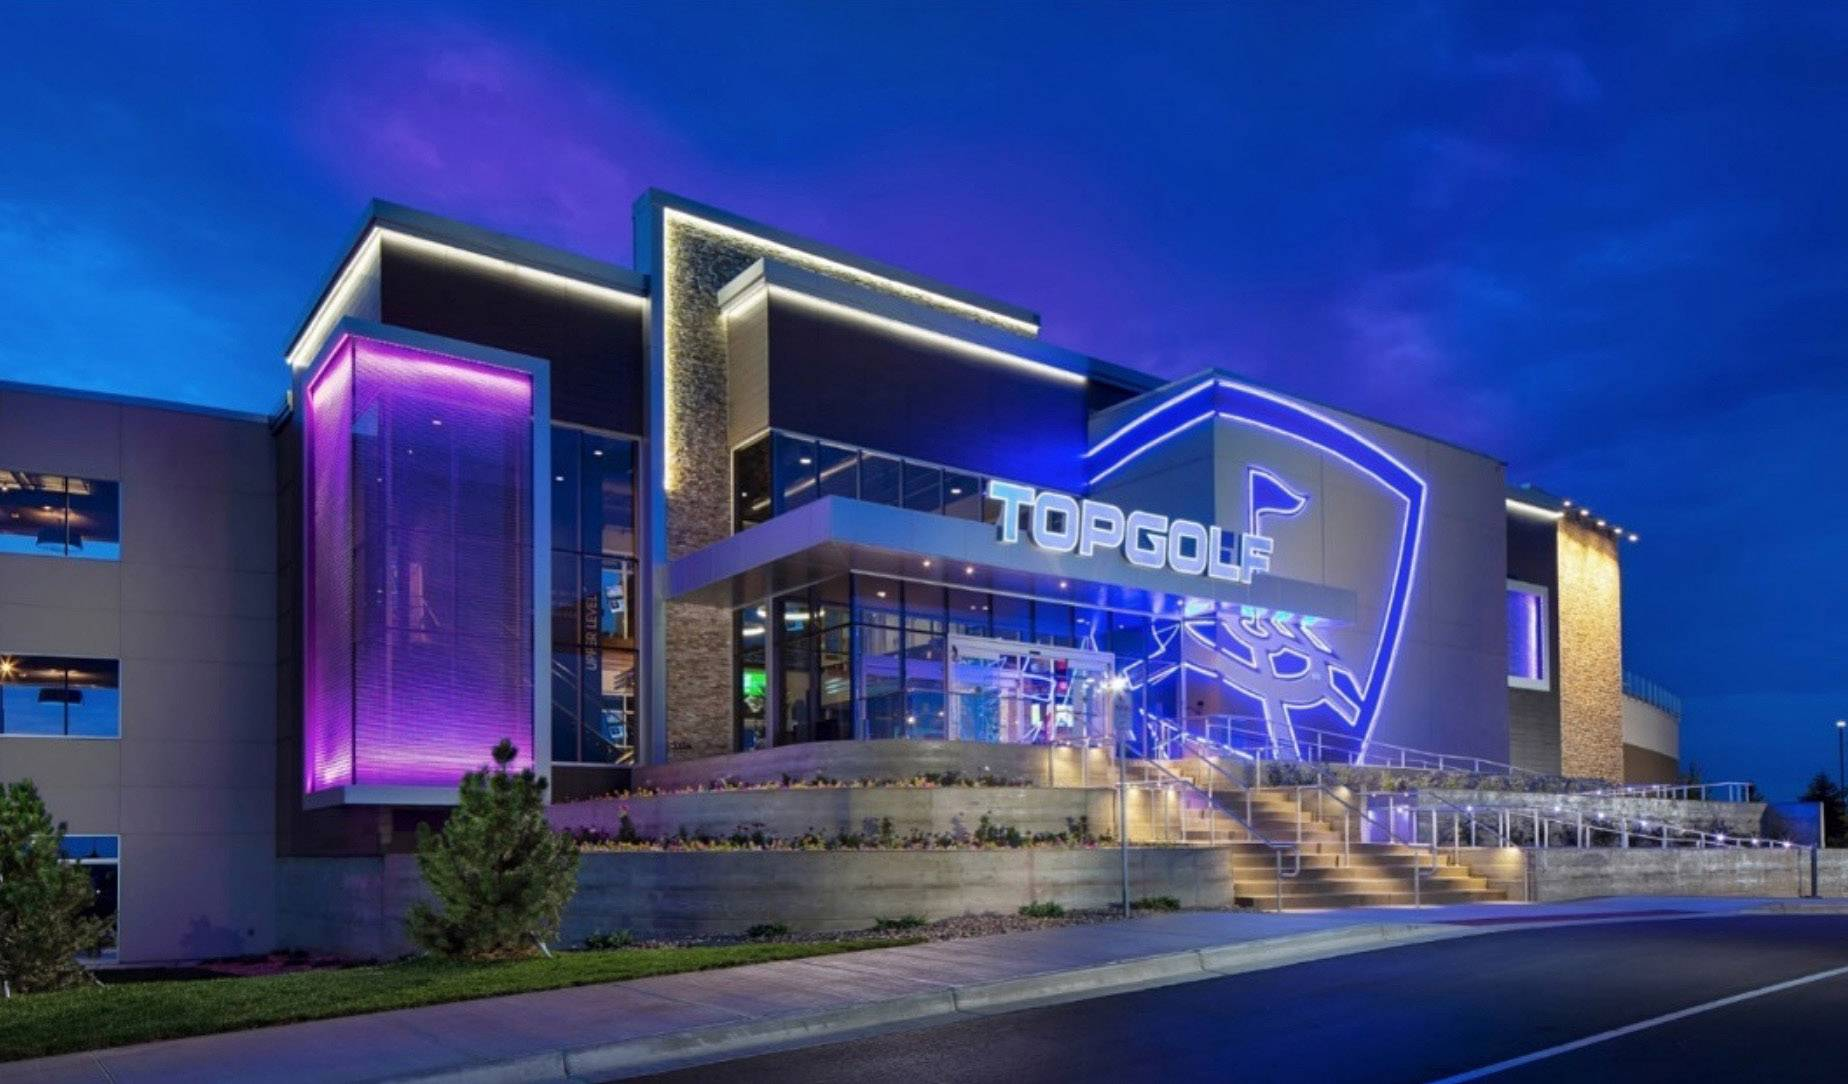 A developer wants to build a Topgolf facility near Route 22 and the Tri-State Tollway in Lincolnshire. The land now is owned by Medline.